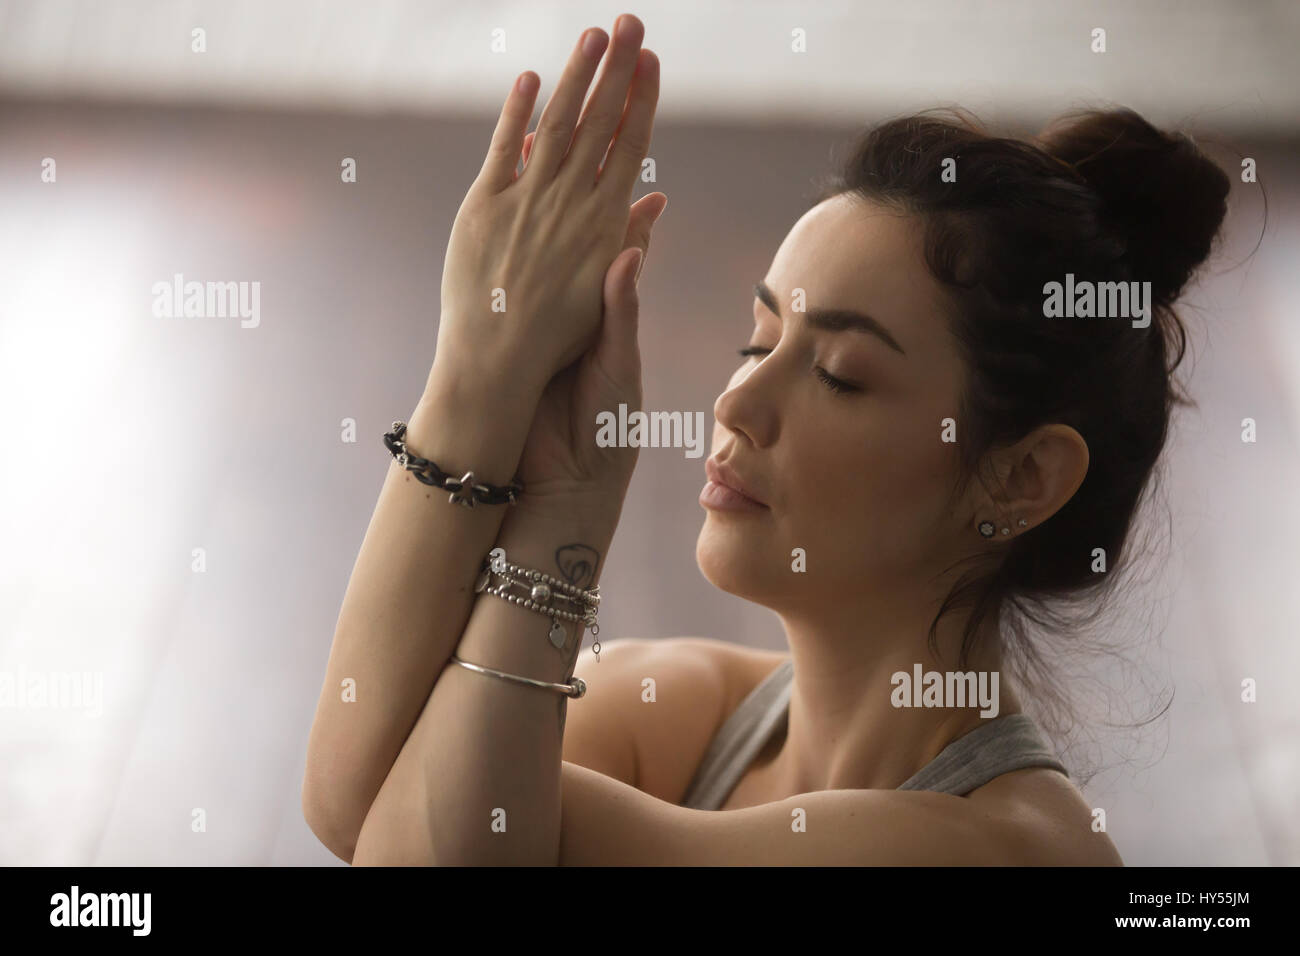 Portrait of young attractive woman meditating with closed eyes,  - Stock Image